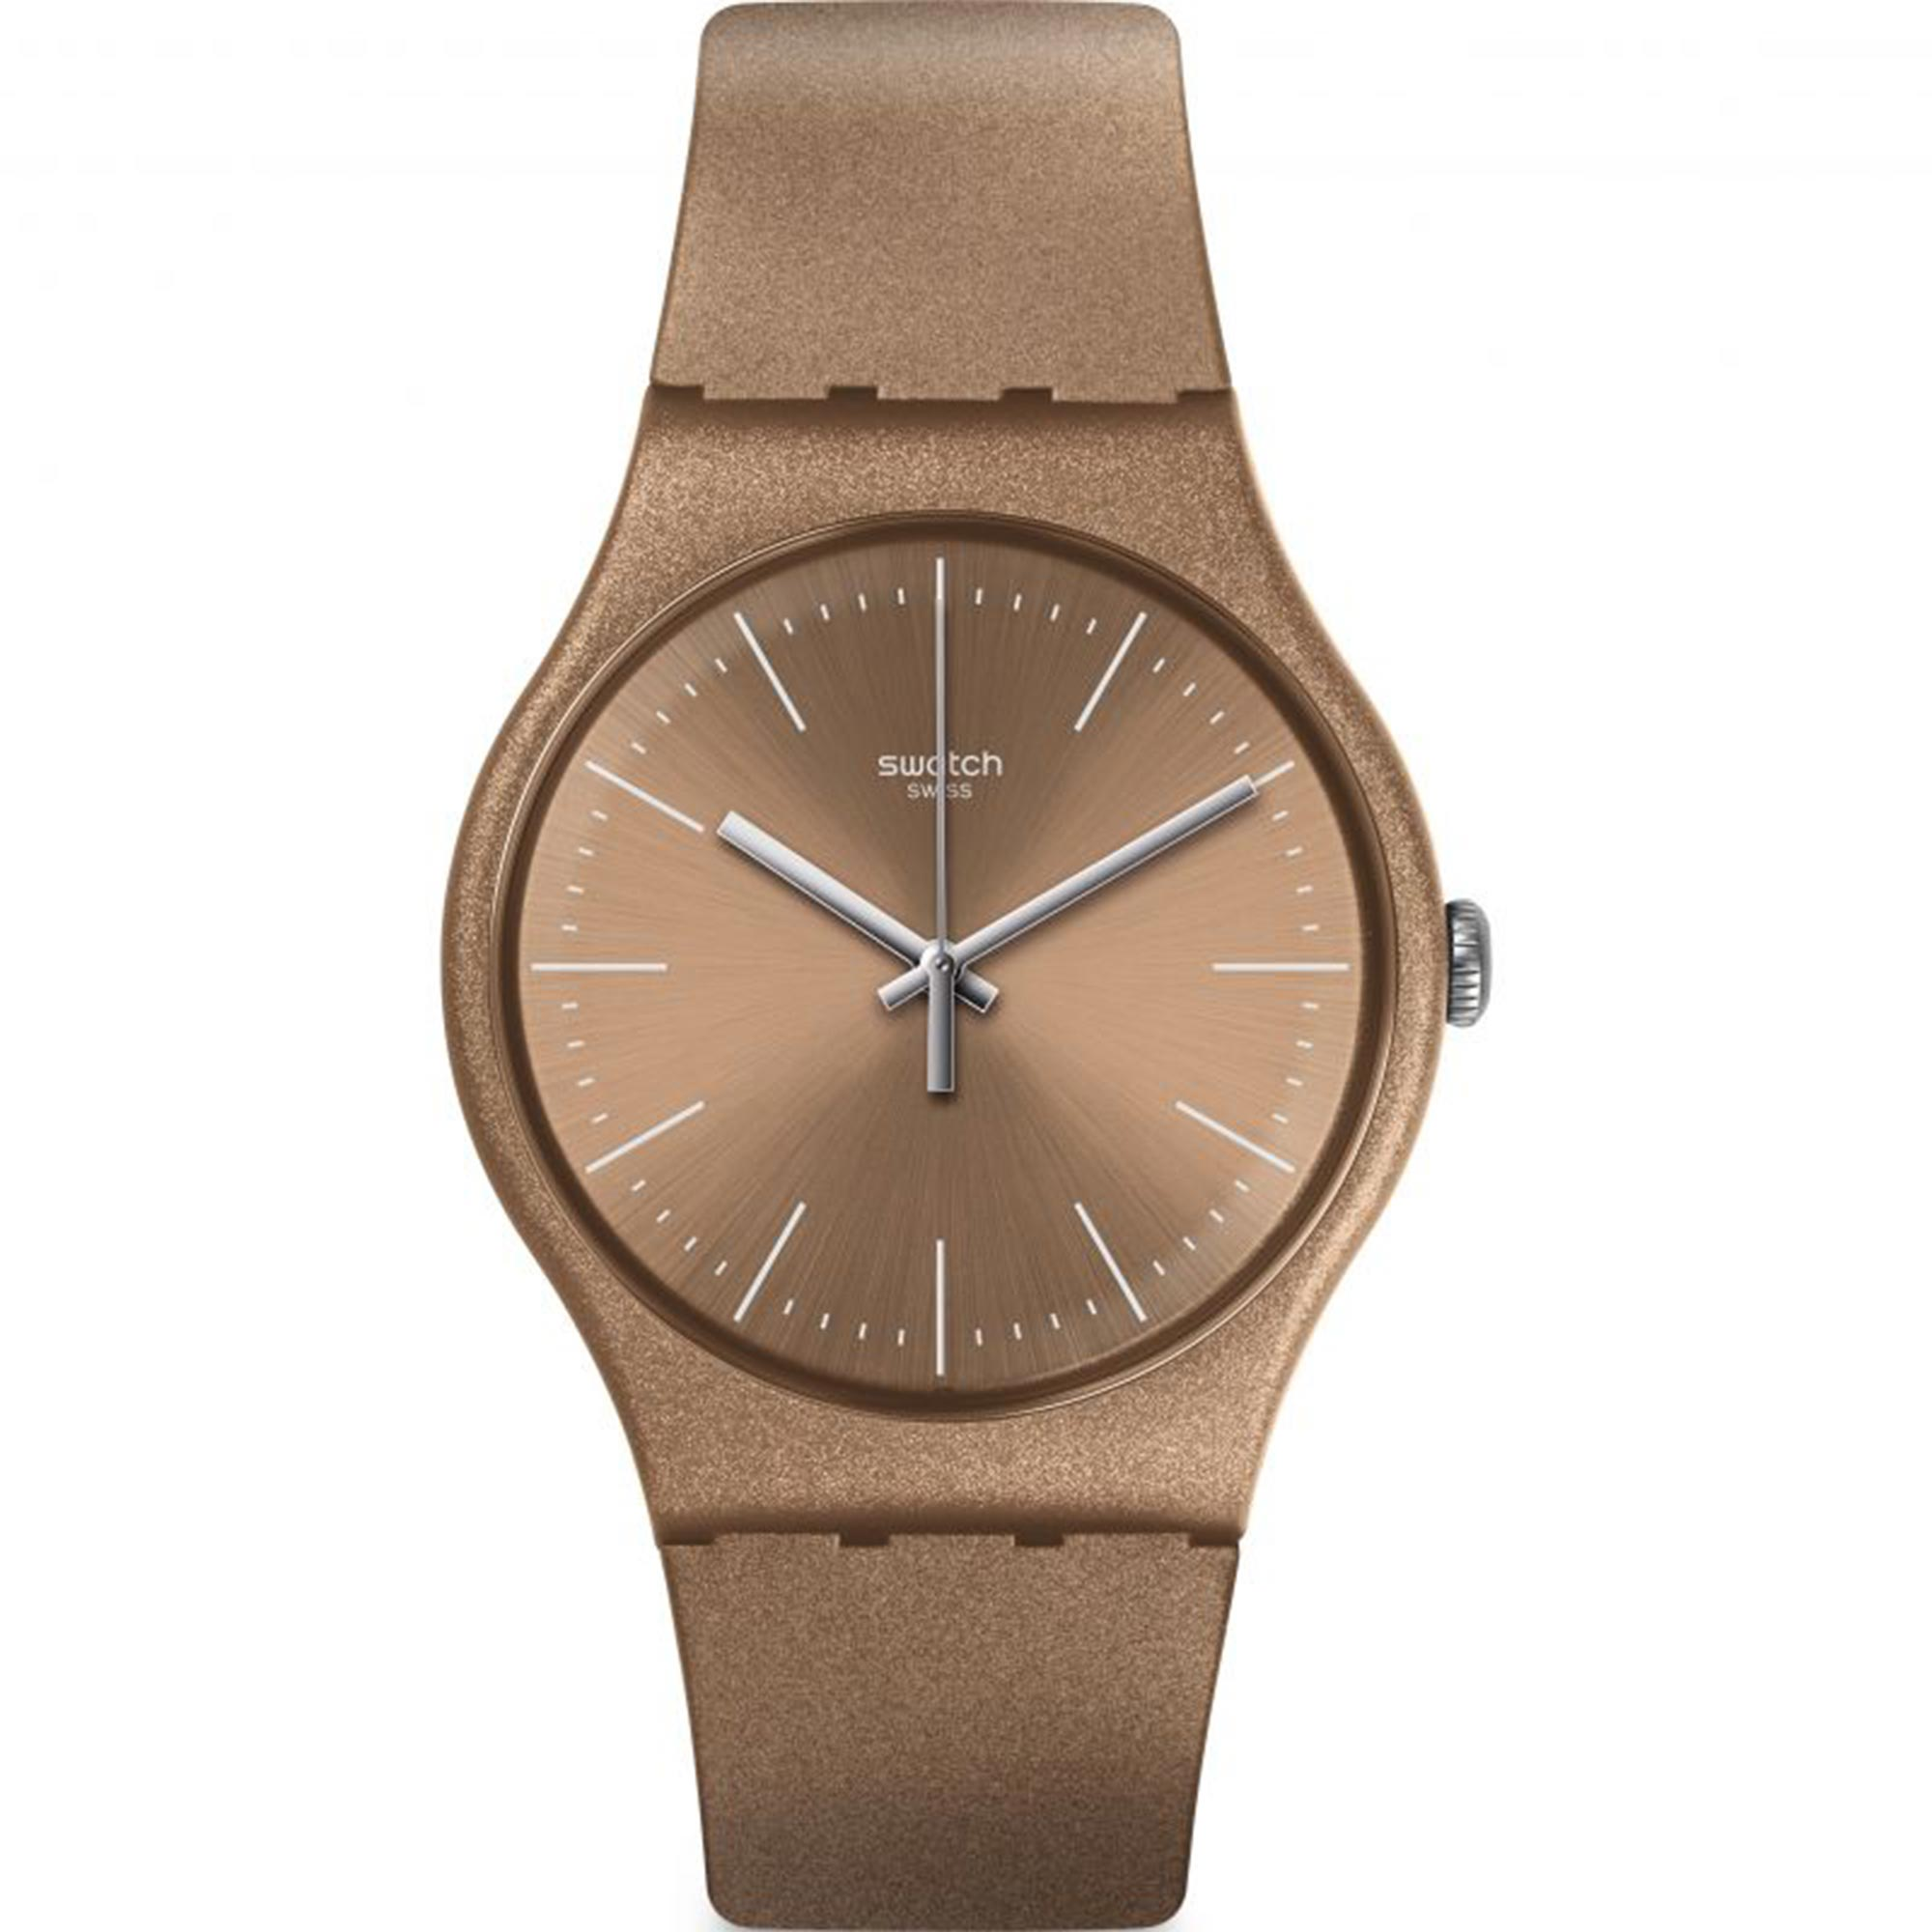 Swatch Powderbayang Quartz Movement Gold Dial Silicone Bracelet Mens Watch SUOM111